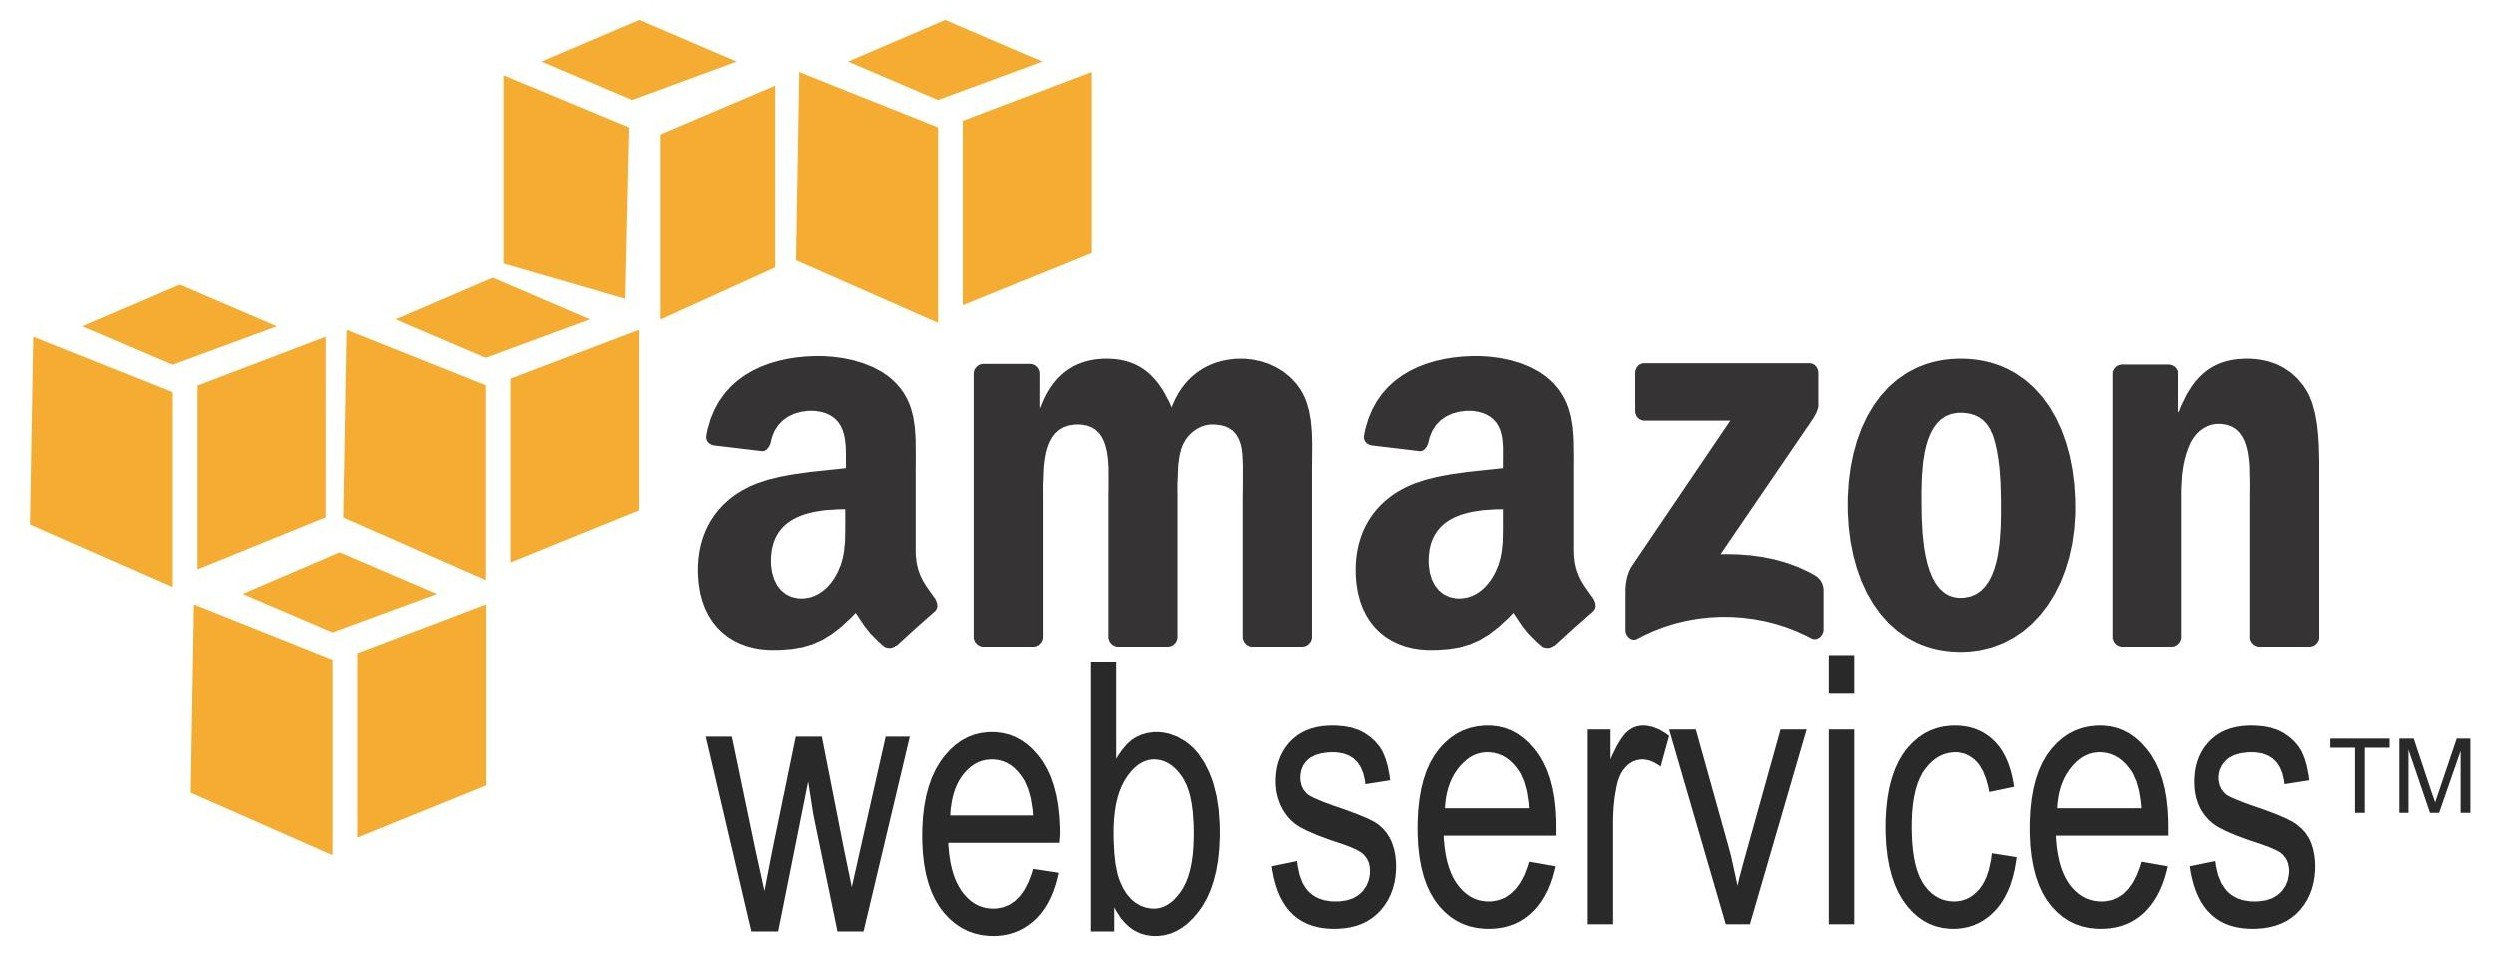 Why some of the worlds most valuable brands pursue iso27001 amazon web serviceslogo xflitez Gallery